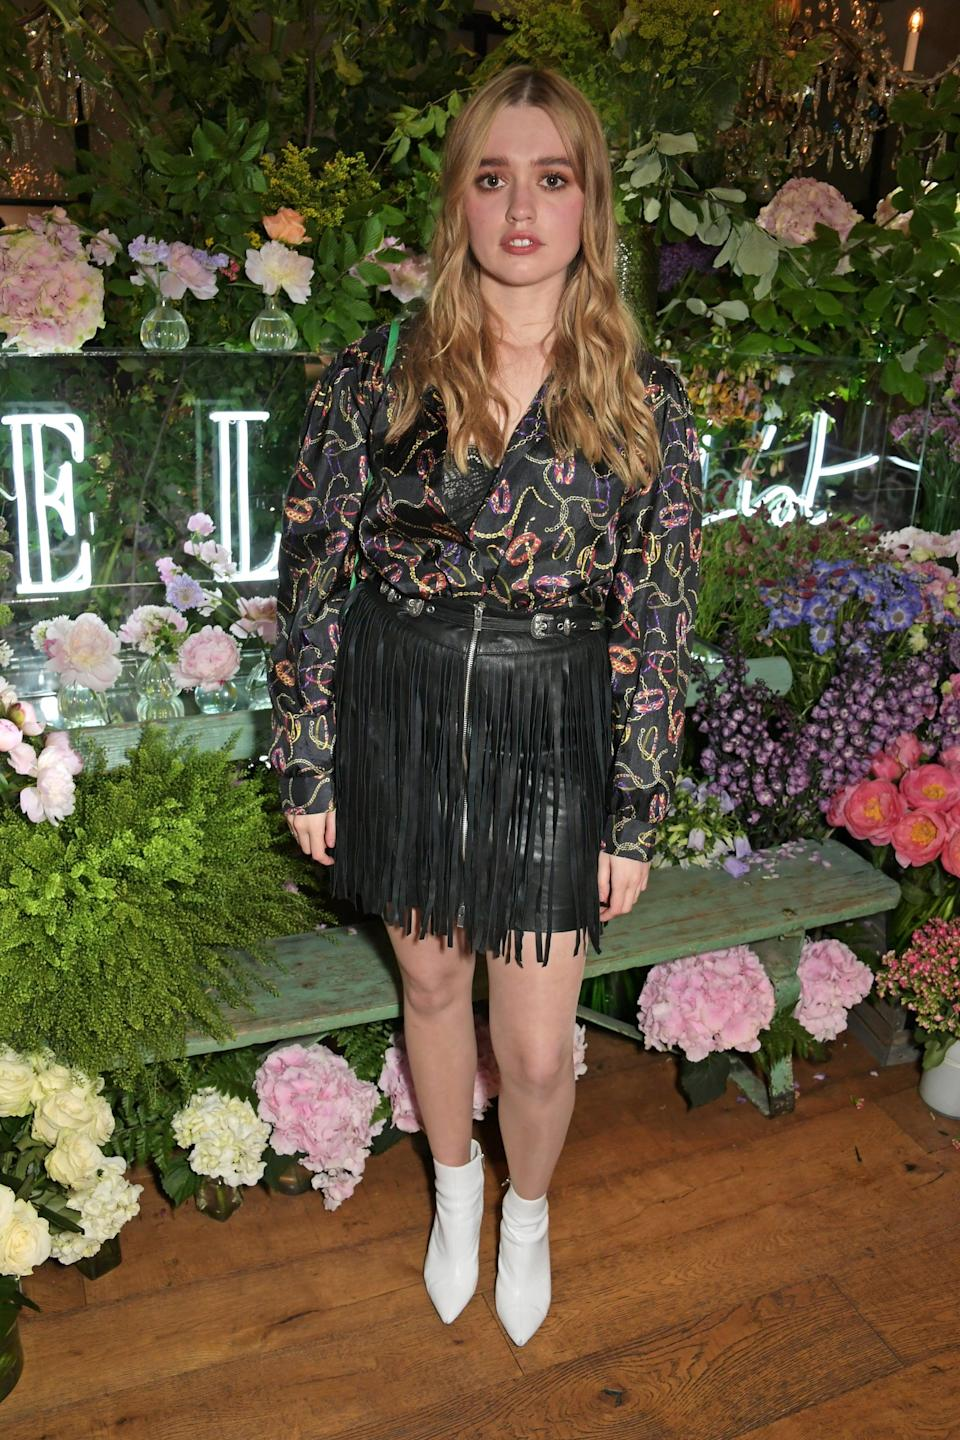 <p>Wood is bringing back Aimee, the popular girl who's crossed over to hang with the decidedly less-cool main group of friends.</p>